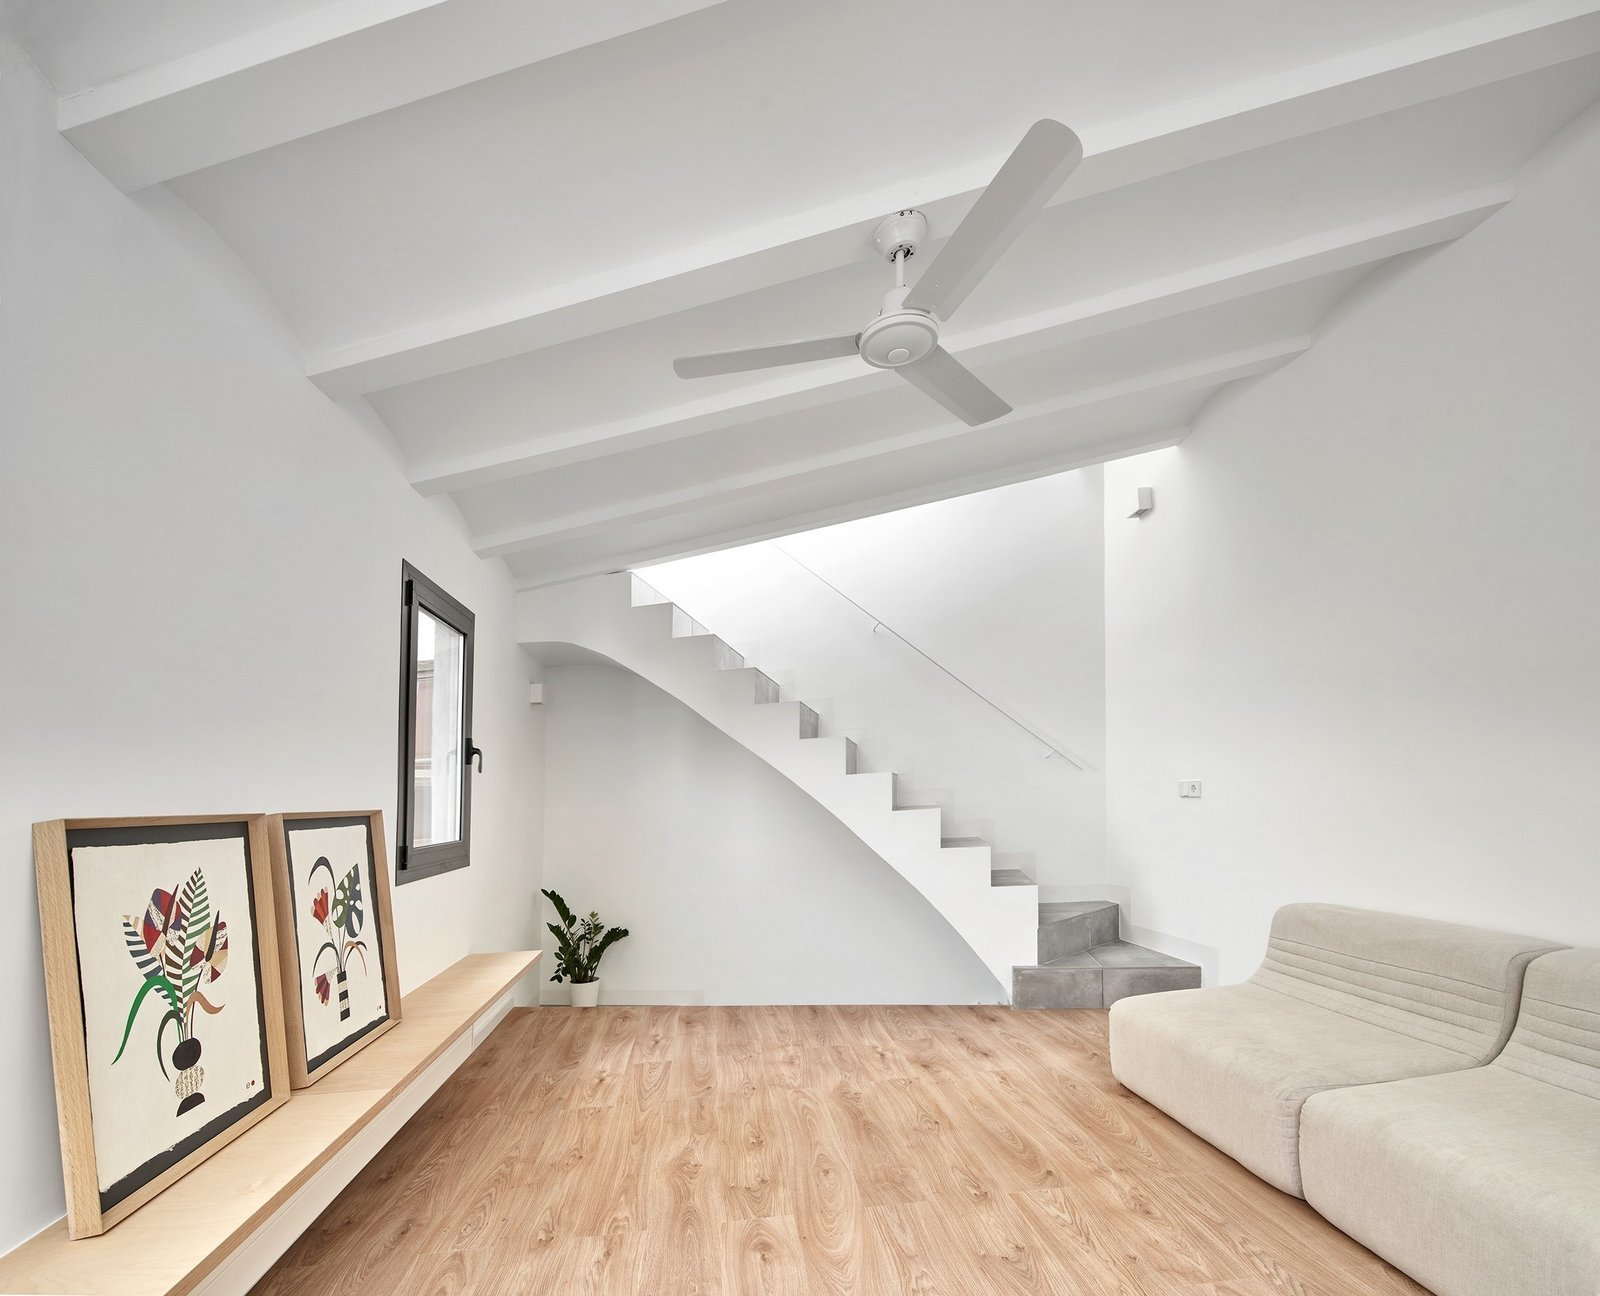 Living Room, Shelves, Ceiling Lighting, Sofa, and Medium Hardwood Floor  Photo 4 of 17 in Picture Windows and Sliding Doors Work Magic in This Cozy Barcelona Home